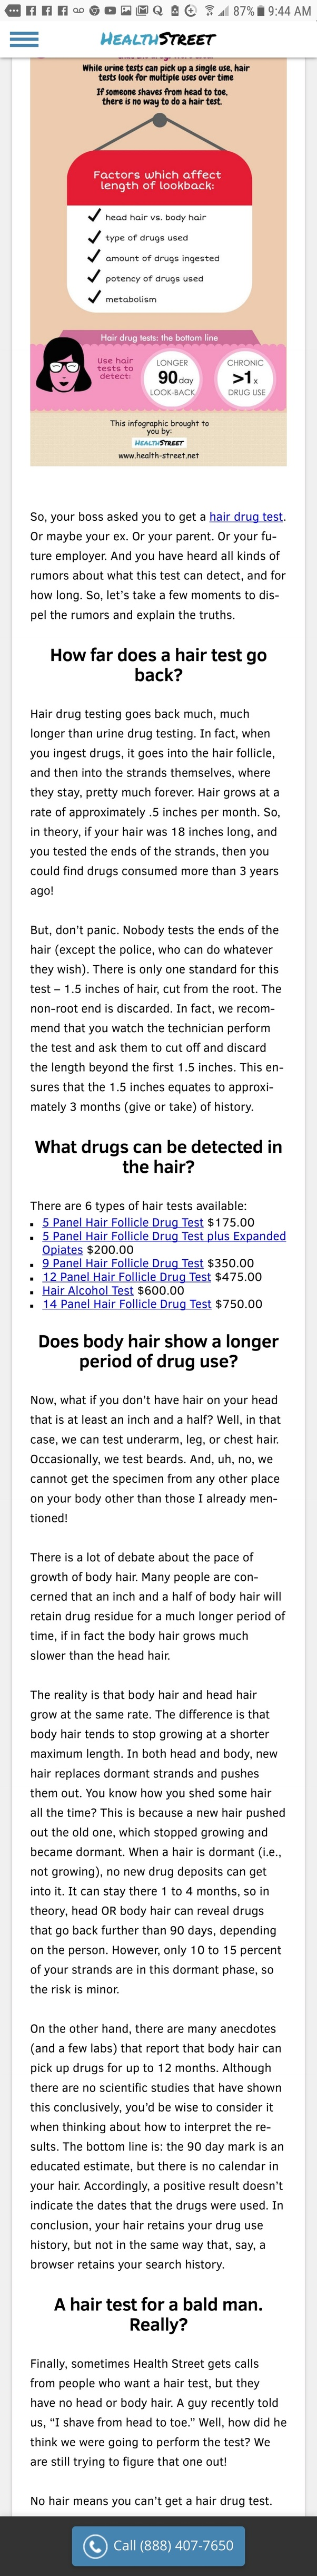 How to pass a hair follicle test for meth - Quora